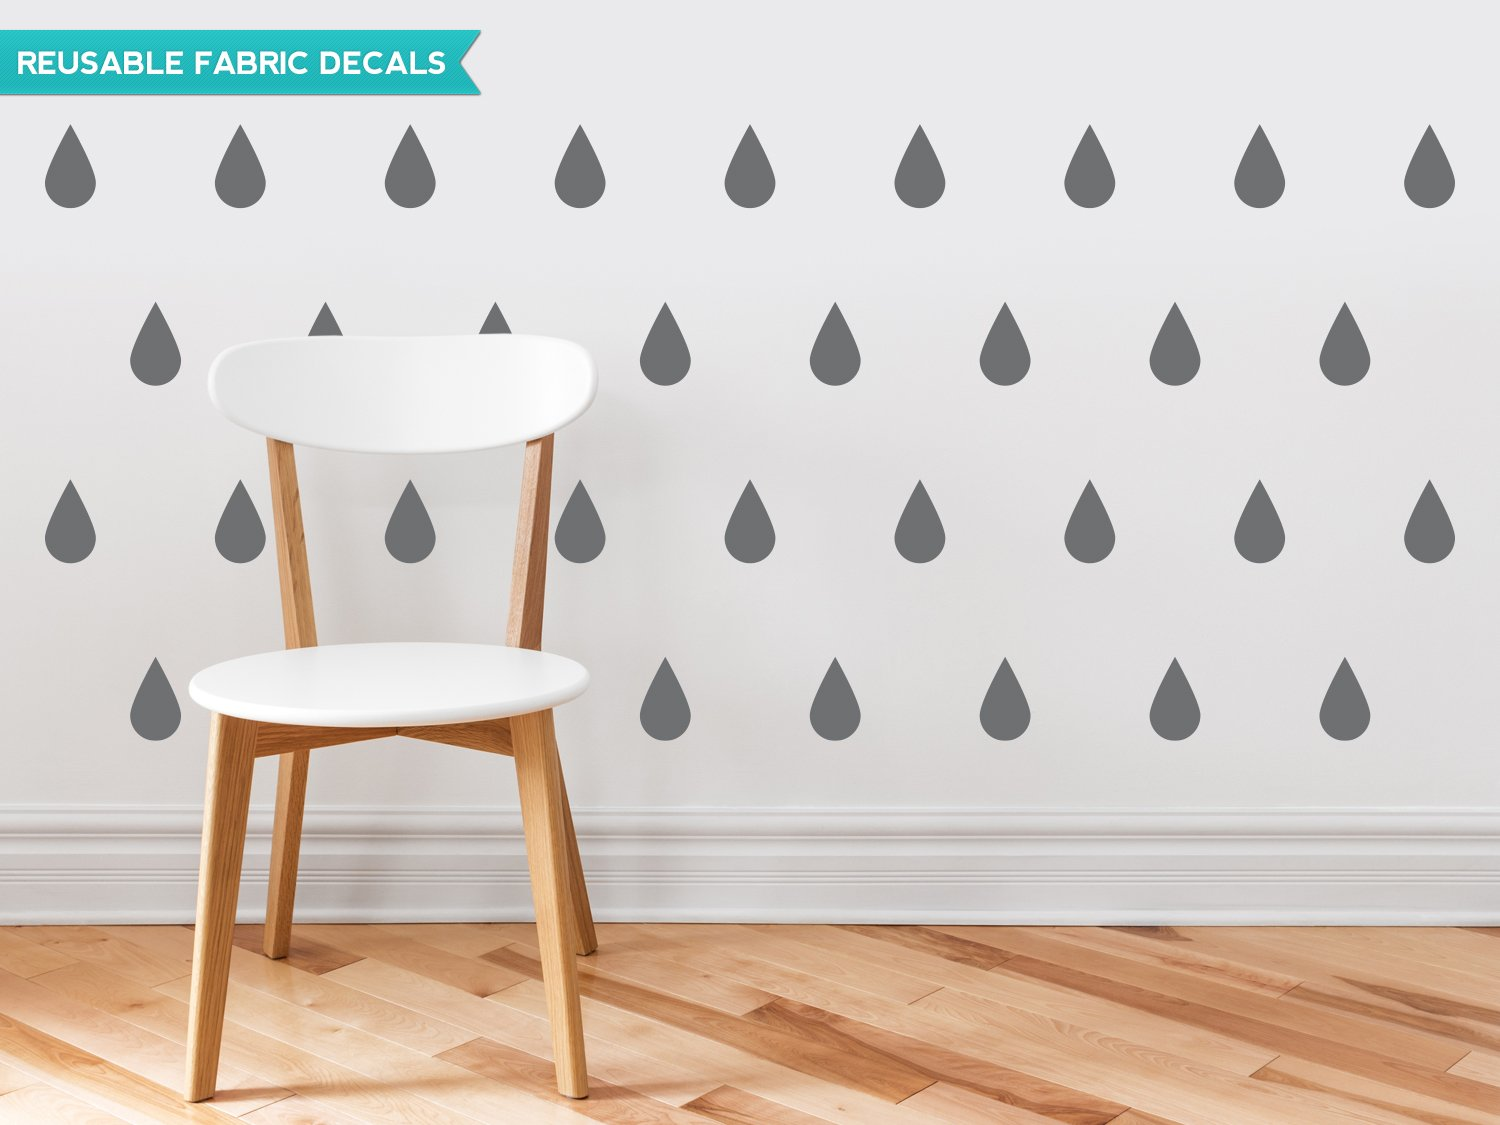 amazon com raindrop fabric wall decals set of 40 raindrops wall amazon com raindrop fabric wall decals set of 40 raindrops wall pattern decals custom options available reusable repositionable baby